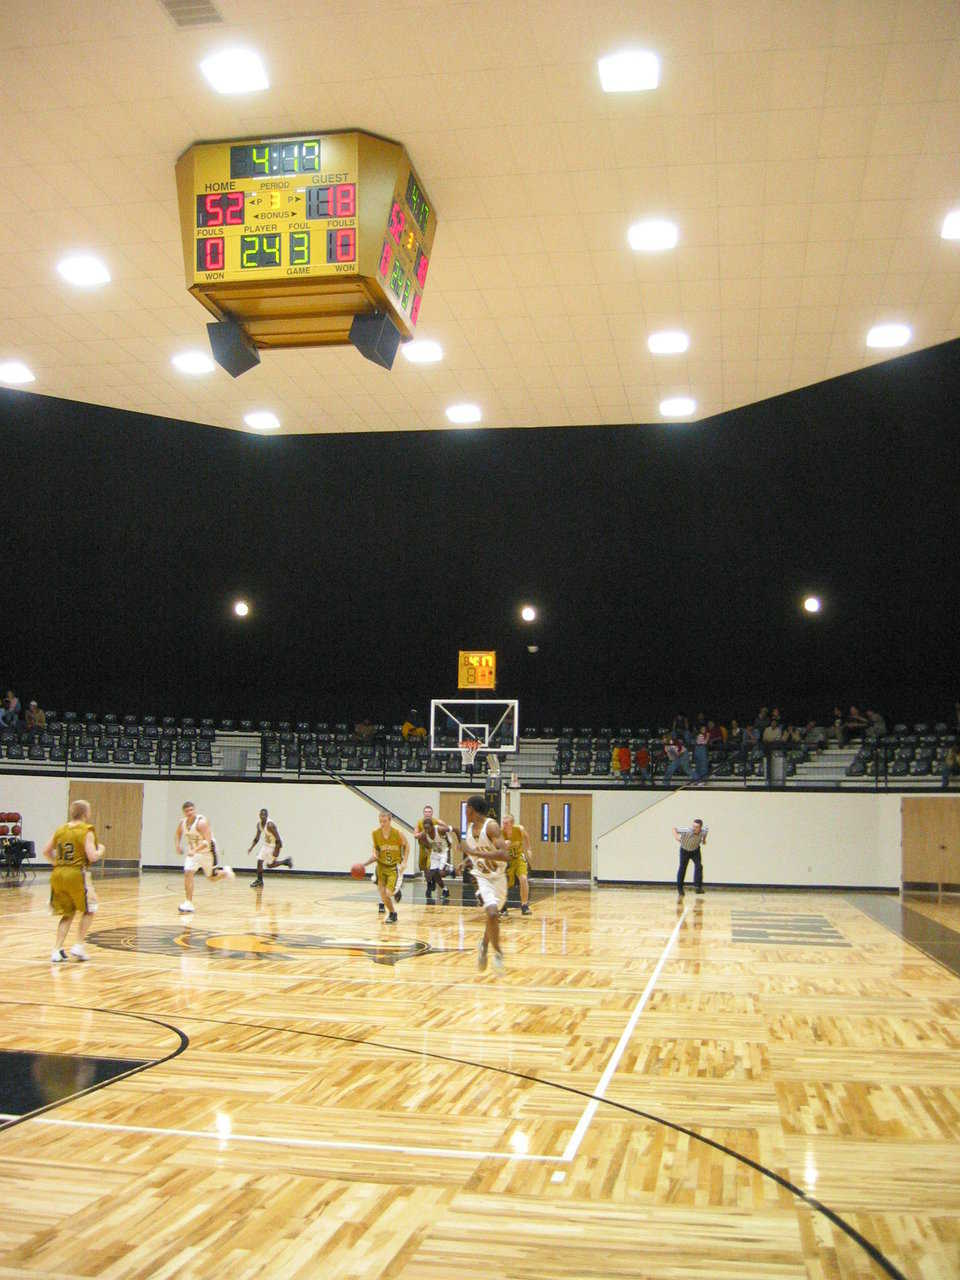 Single hung ceiling — Helps absorb sound in the Gladiator Coliseum in Italy, Texas.